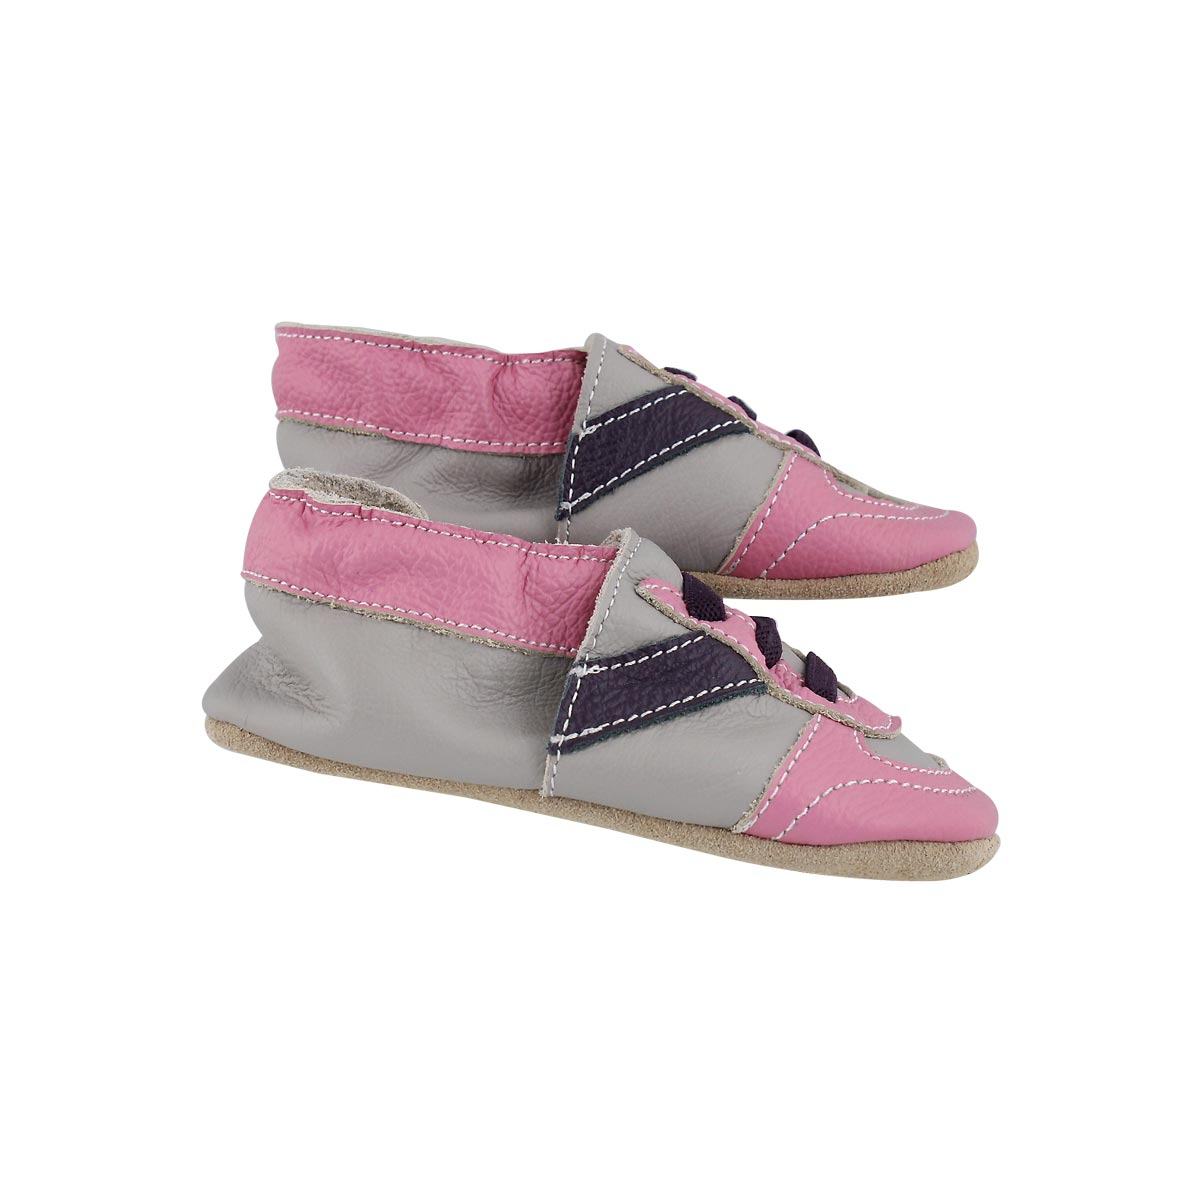 Infs-g Sneaky pink slippers